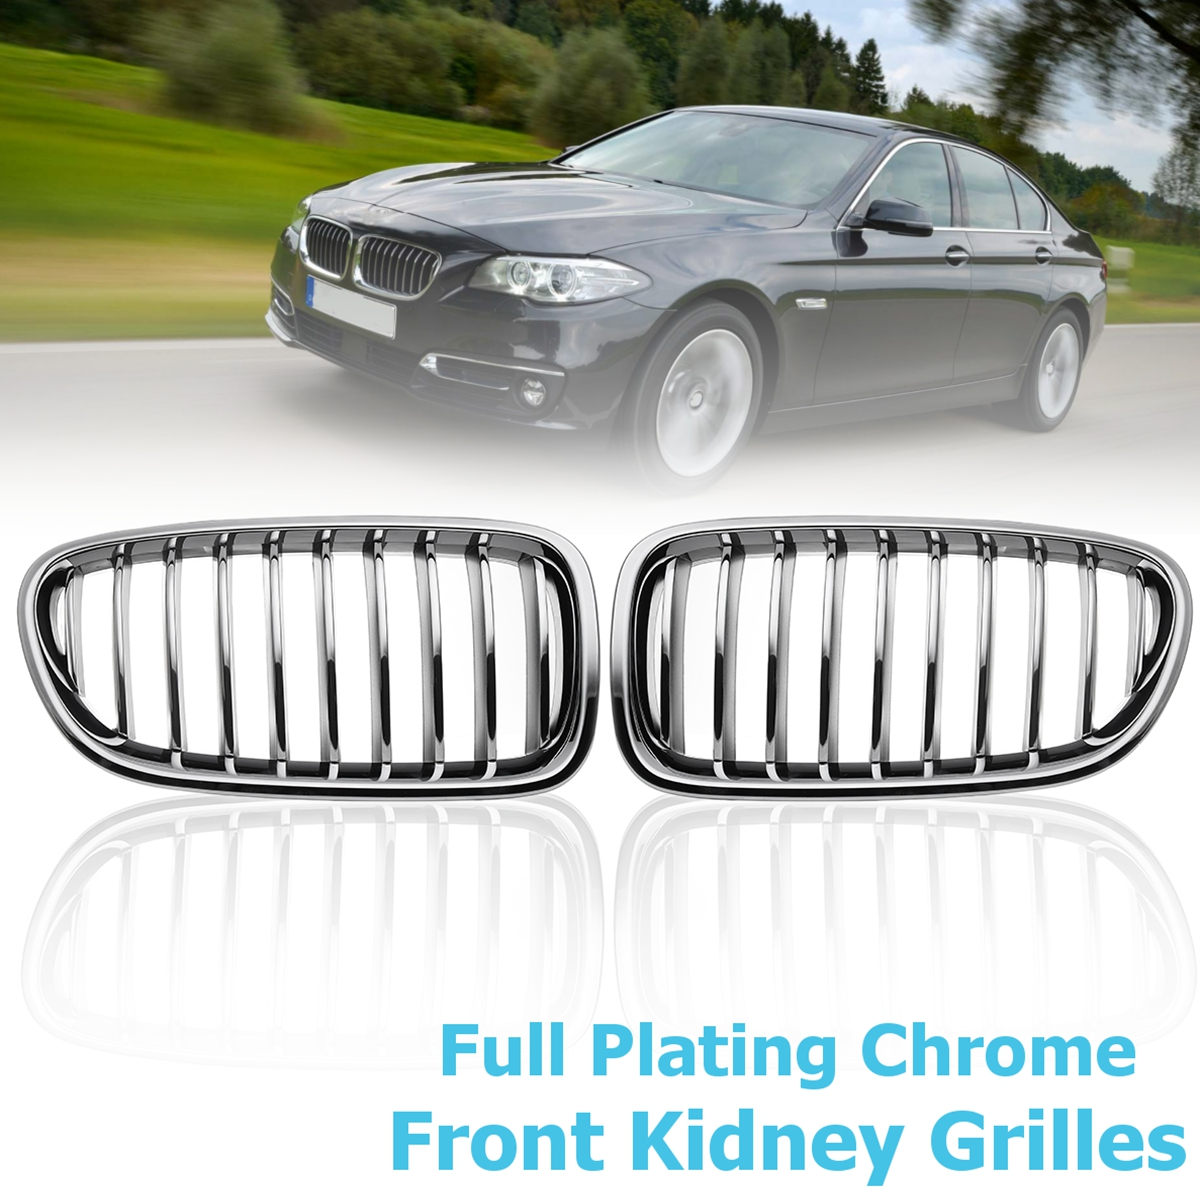 1 Pair Full Plating Chrome Front Kidney Grilles Auto Car-styling Front Racing Grill Grille for BMW 5-SERIES F10 F18 2010-2017 2pcs front grille bumper hood grill grilles automobile front kidney grille for bmw 1 series f20 2012 2014 glossy black